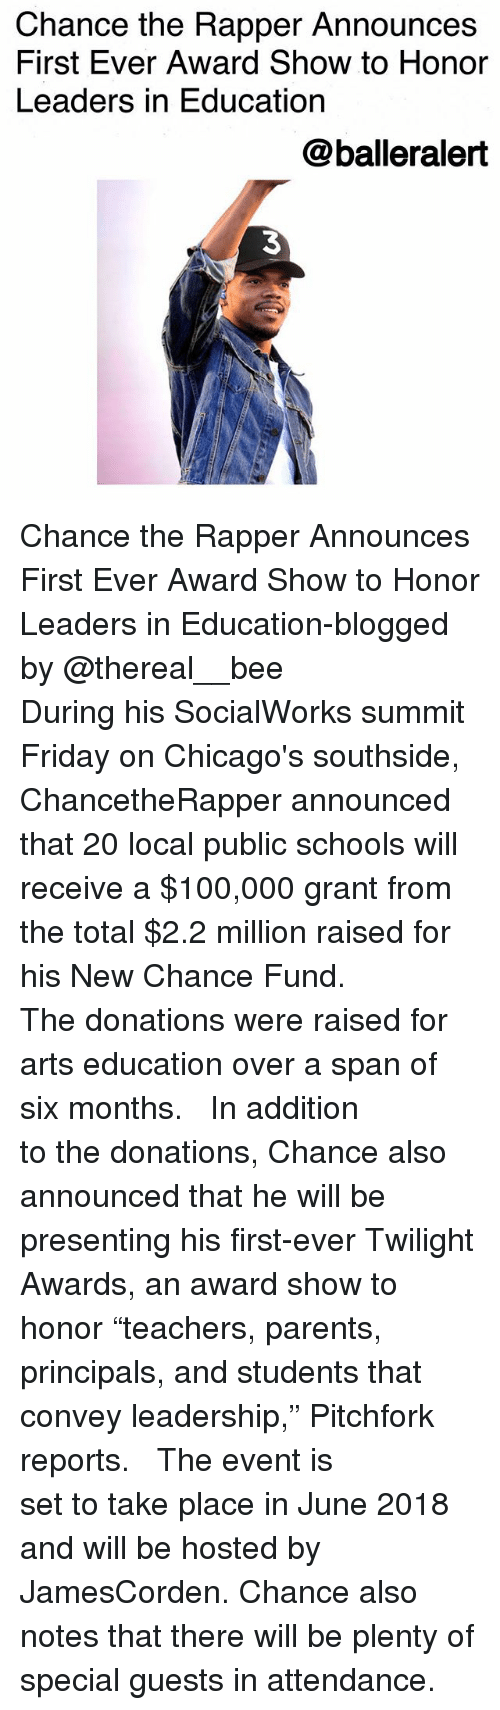 "Anaconda, Chance the Rapper, and Friday: Chance the Rapper Announces  First Ever Award Show to Honor  Leaders in Education  @balleralert  3 Chance the Rapper Announces First Ever Award Show to Honor Leaders in Education-blogged by @thereal__bee ⠀⠀⠀⠀⠀⠀⠀⠀⠀ ⠀⠀ During his SocialWorks summit Friday on Chicago's southside, ChancetheRapper announced that 20 local public schools will receive a $100,000 grant from the total $2.2 million raised for his New Chance Fund. ⠀⠀⠀⠀⠀⠀⠀⠀⠀ ⠀⠀ The donations were raised for arts education over a span of six months. ⠀⠀⠀⠀⠀⠀⠀⠀⠀ ⠀⠀ In addition to the donations, Chance also announced that he will be presenting his first-ever Twilight Awards, an award show to honor ""teachers, parents, principals, and students that convey leadership,"" Pitchfork reports. ⠀⠀⠀⠀⠀⠀⠀⠀⠀ ⠀⠀ The event is set to take place in June 2018 and will be hosted by JamesCorden. Chance also notes that there will be plenty of special guests in attendance."